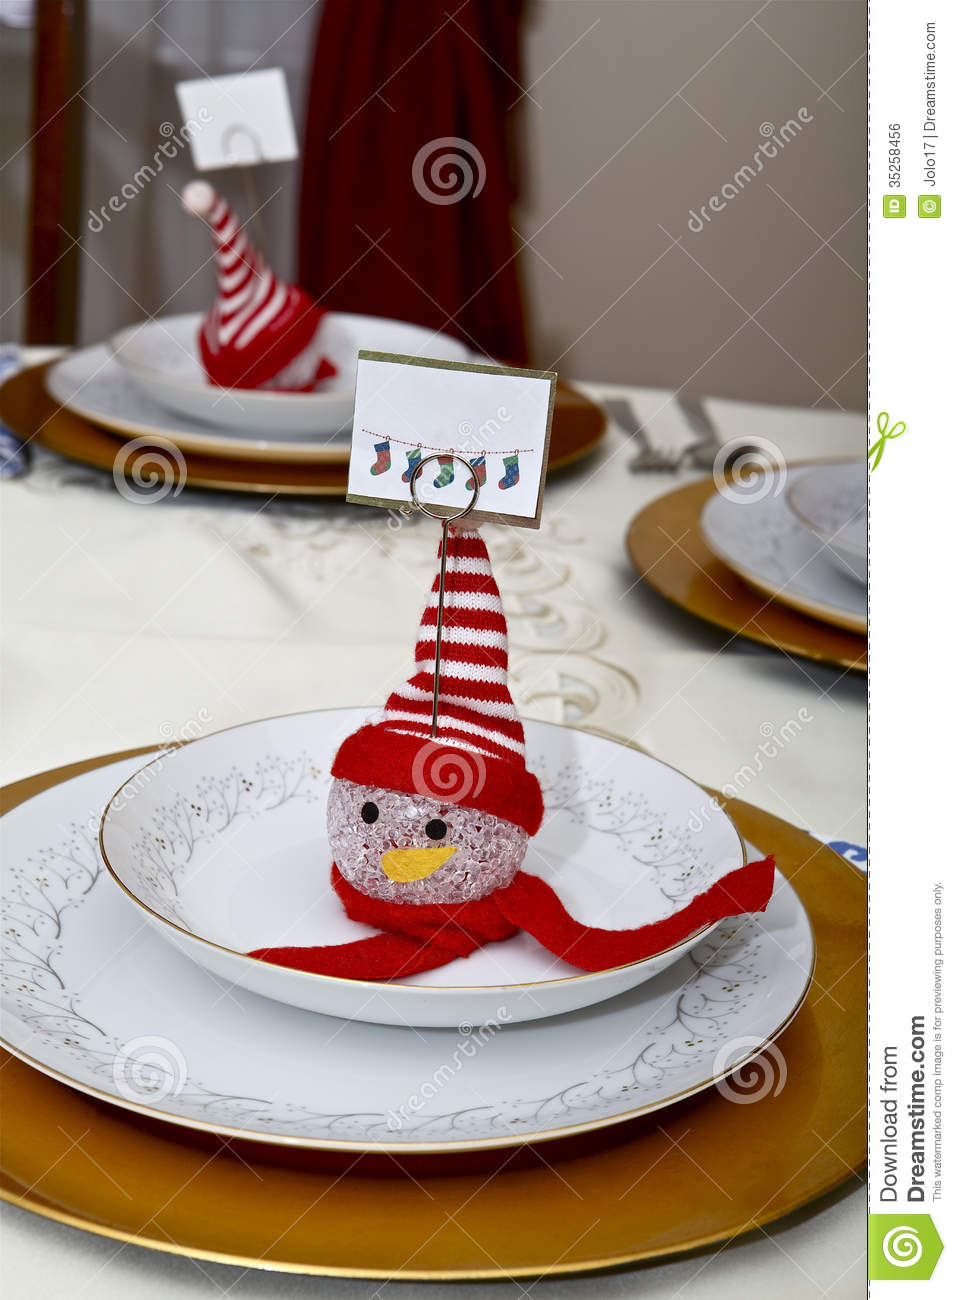 Table Setting Stock Photo Image Of Dinnerware Ornament